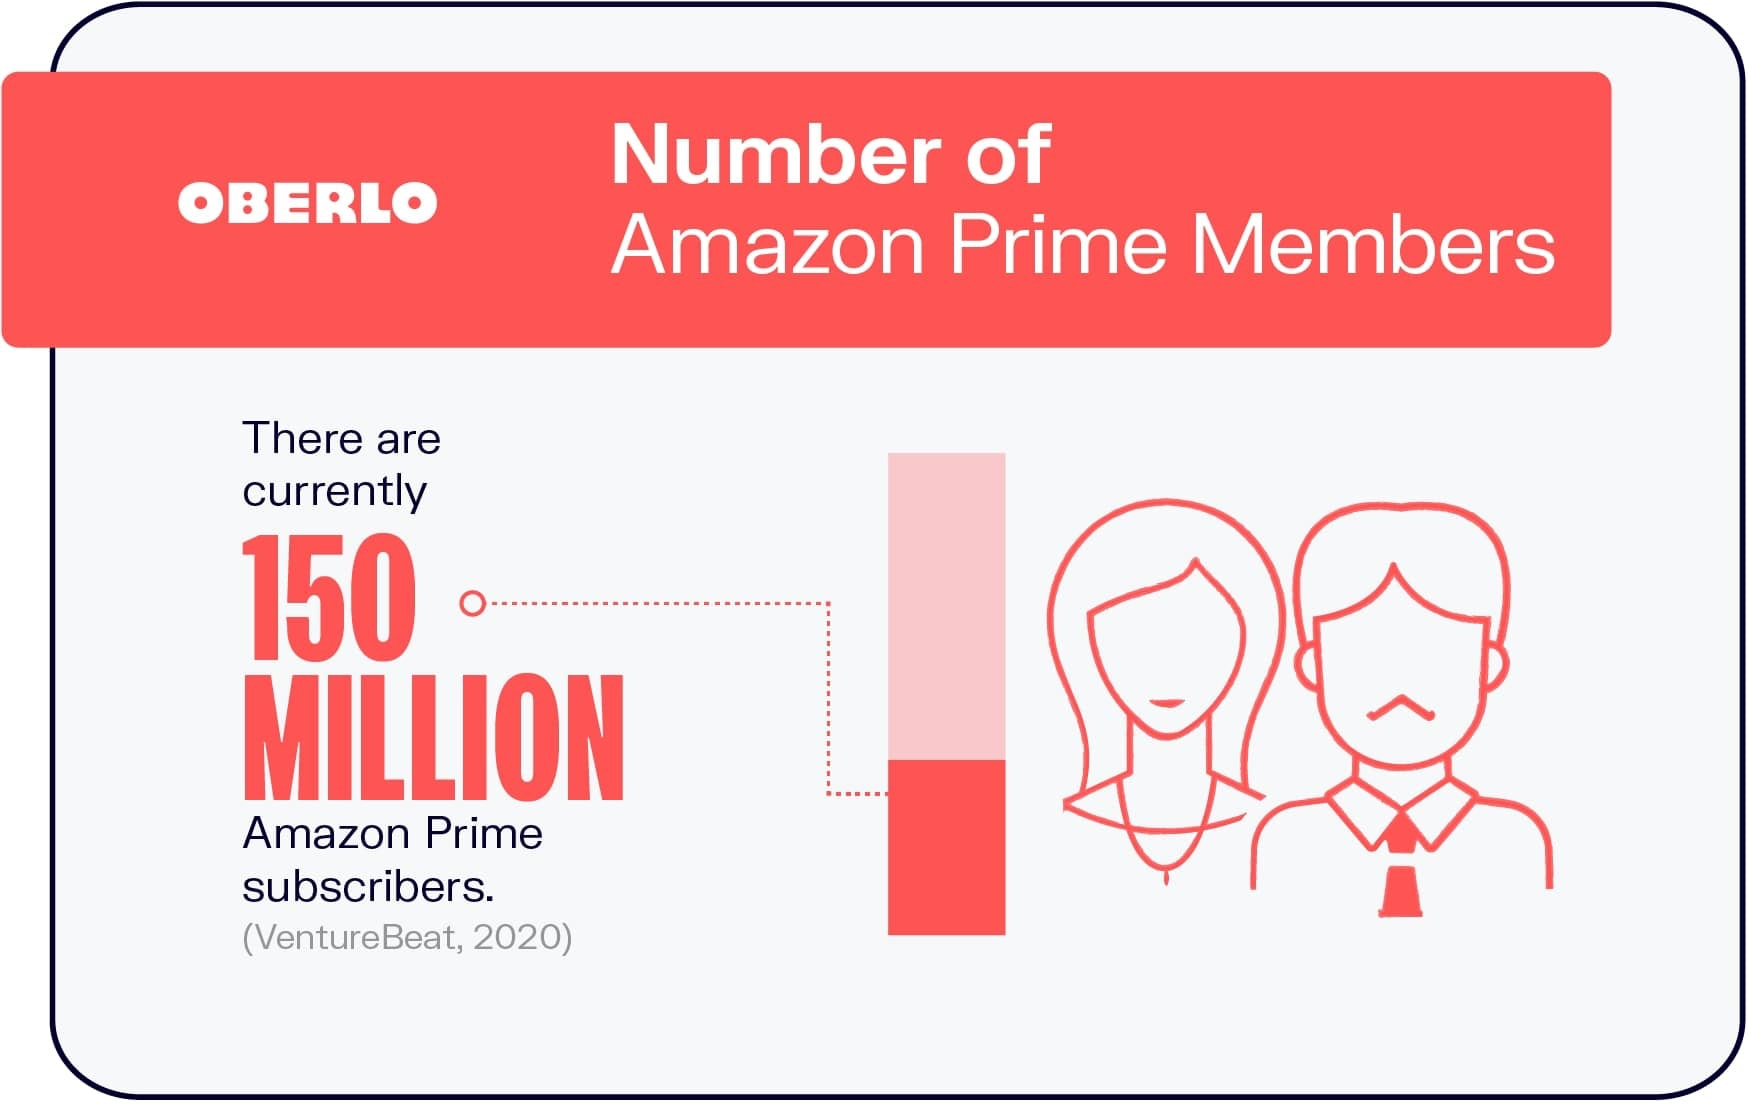 Number of Amazon Prime Members